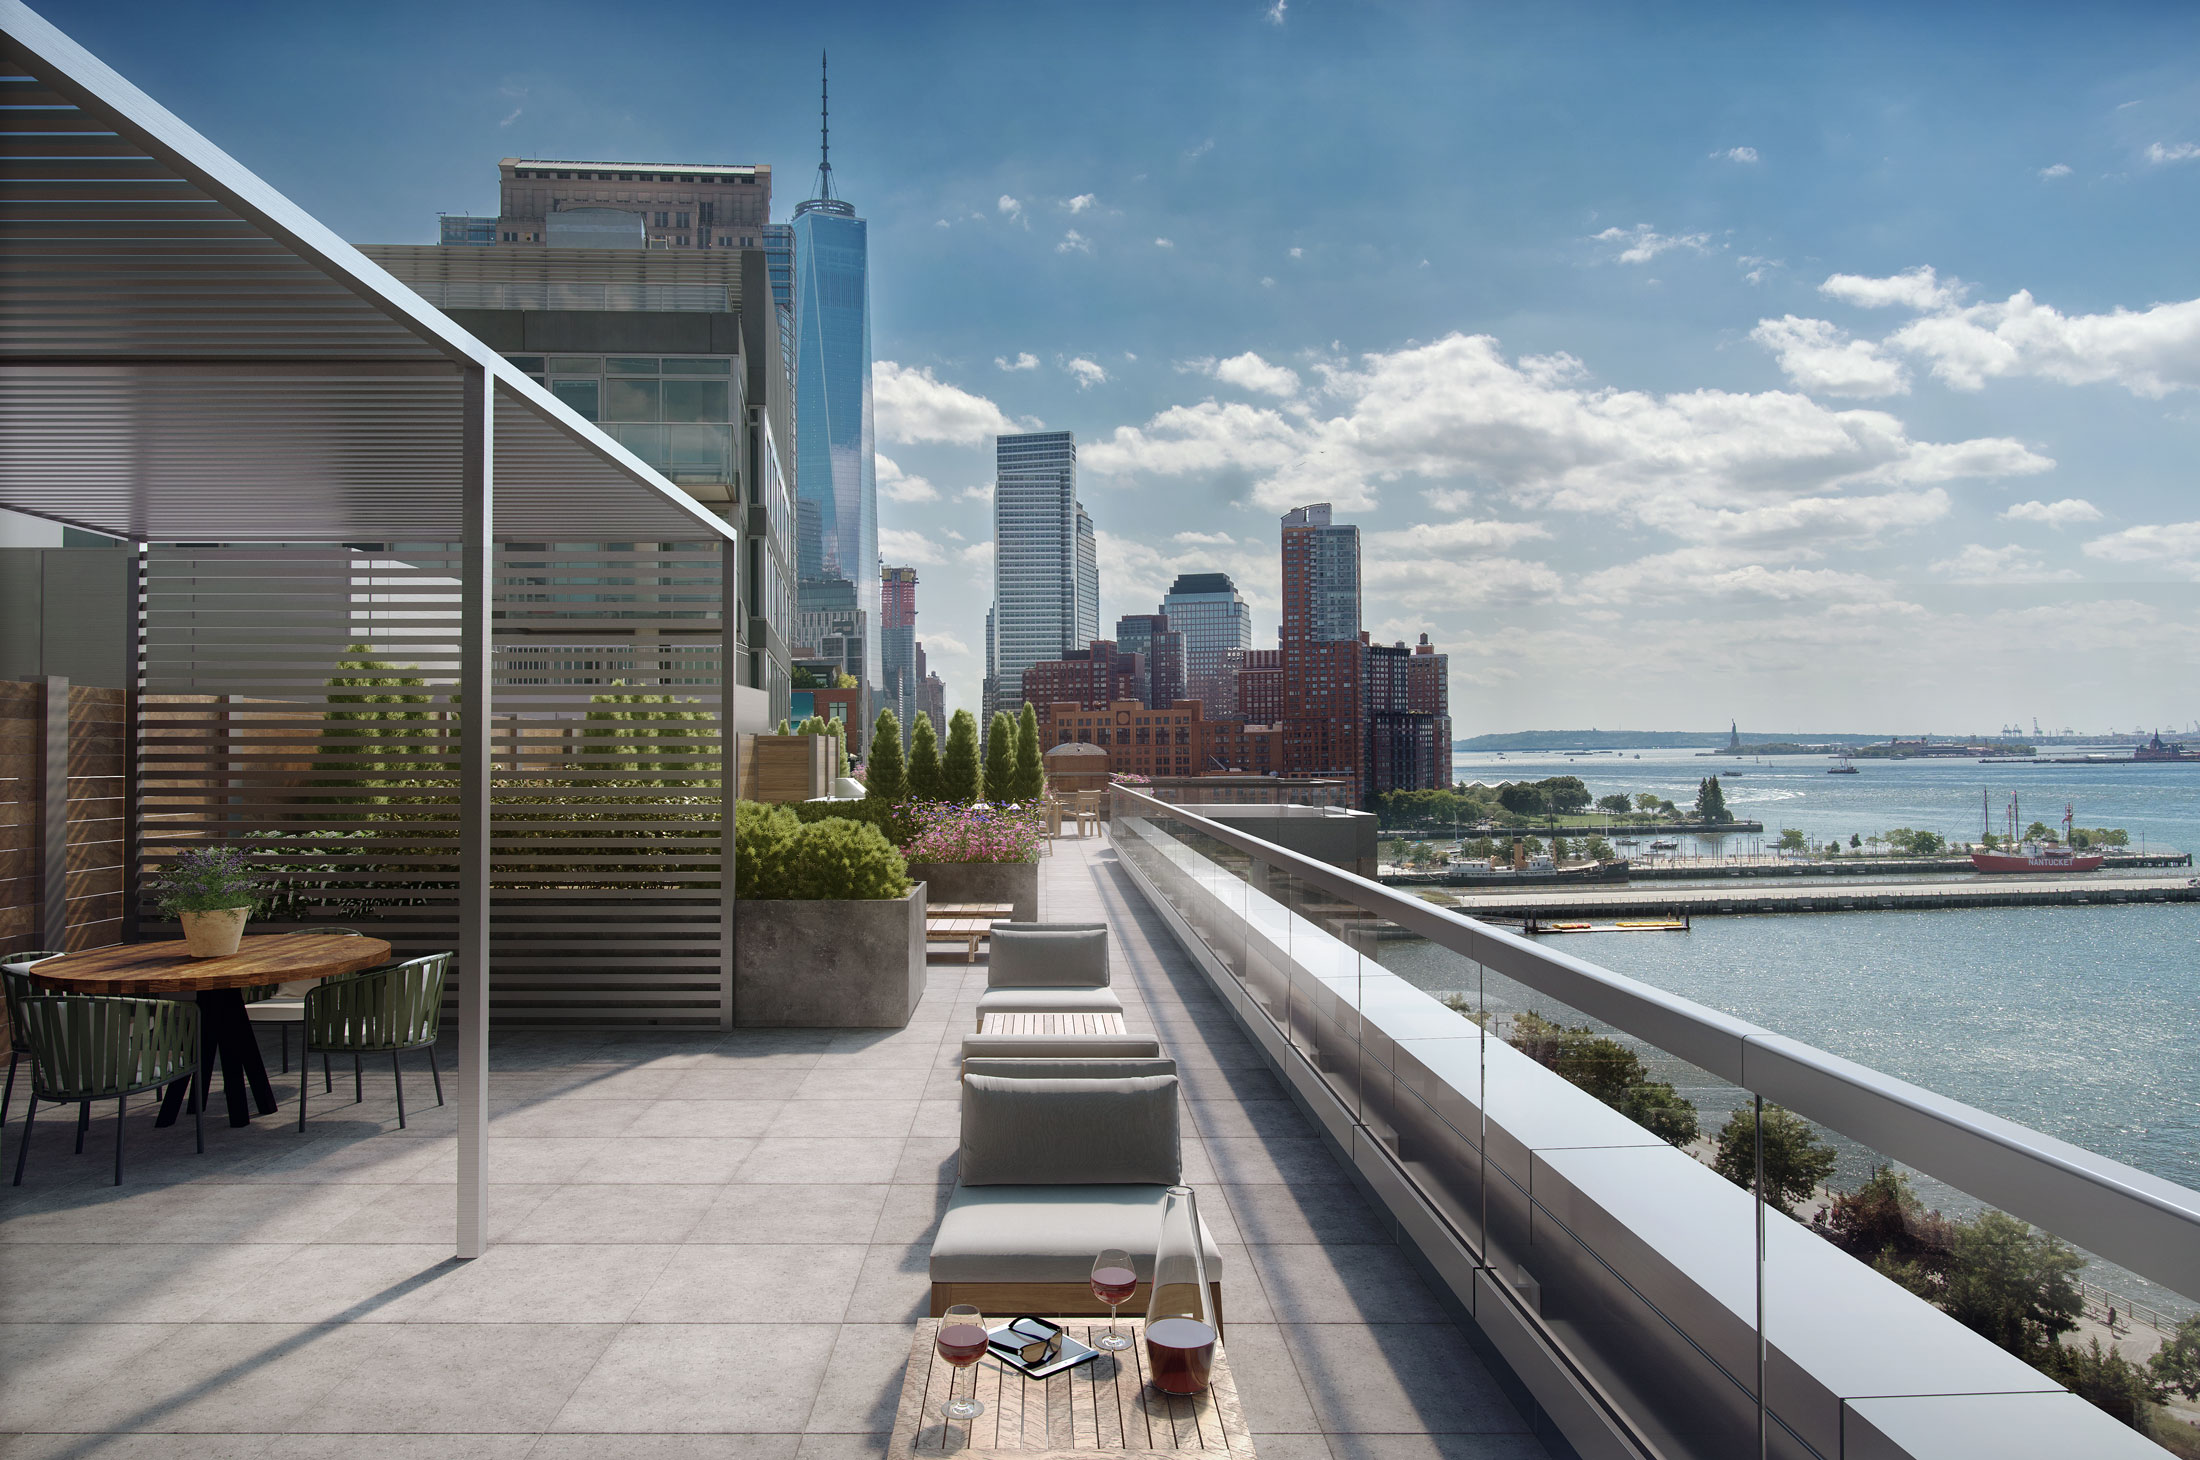 Architectural Rendering of the rooftop of the 456 Washington Street project located in Tribeca, New York City